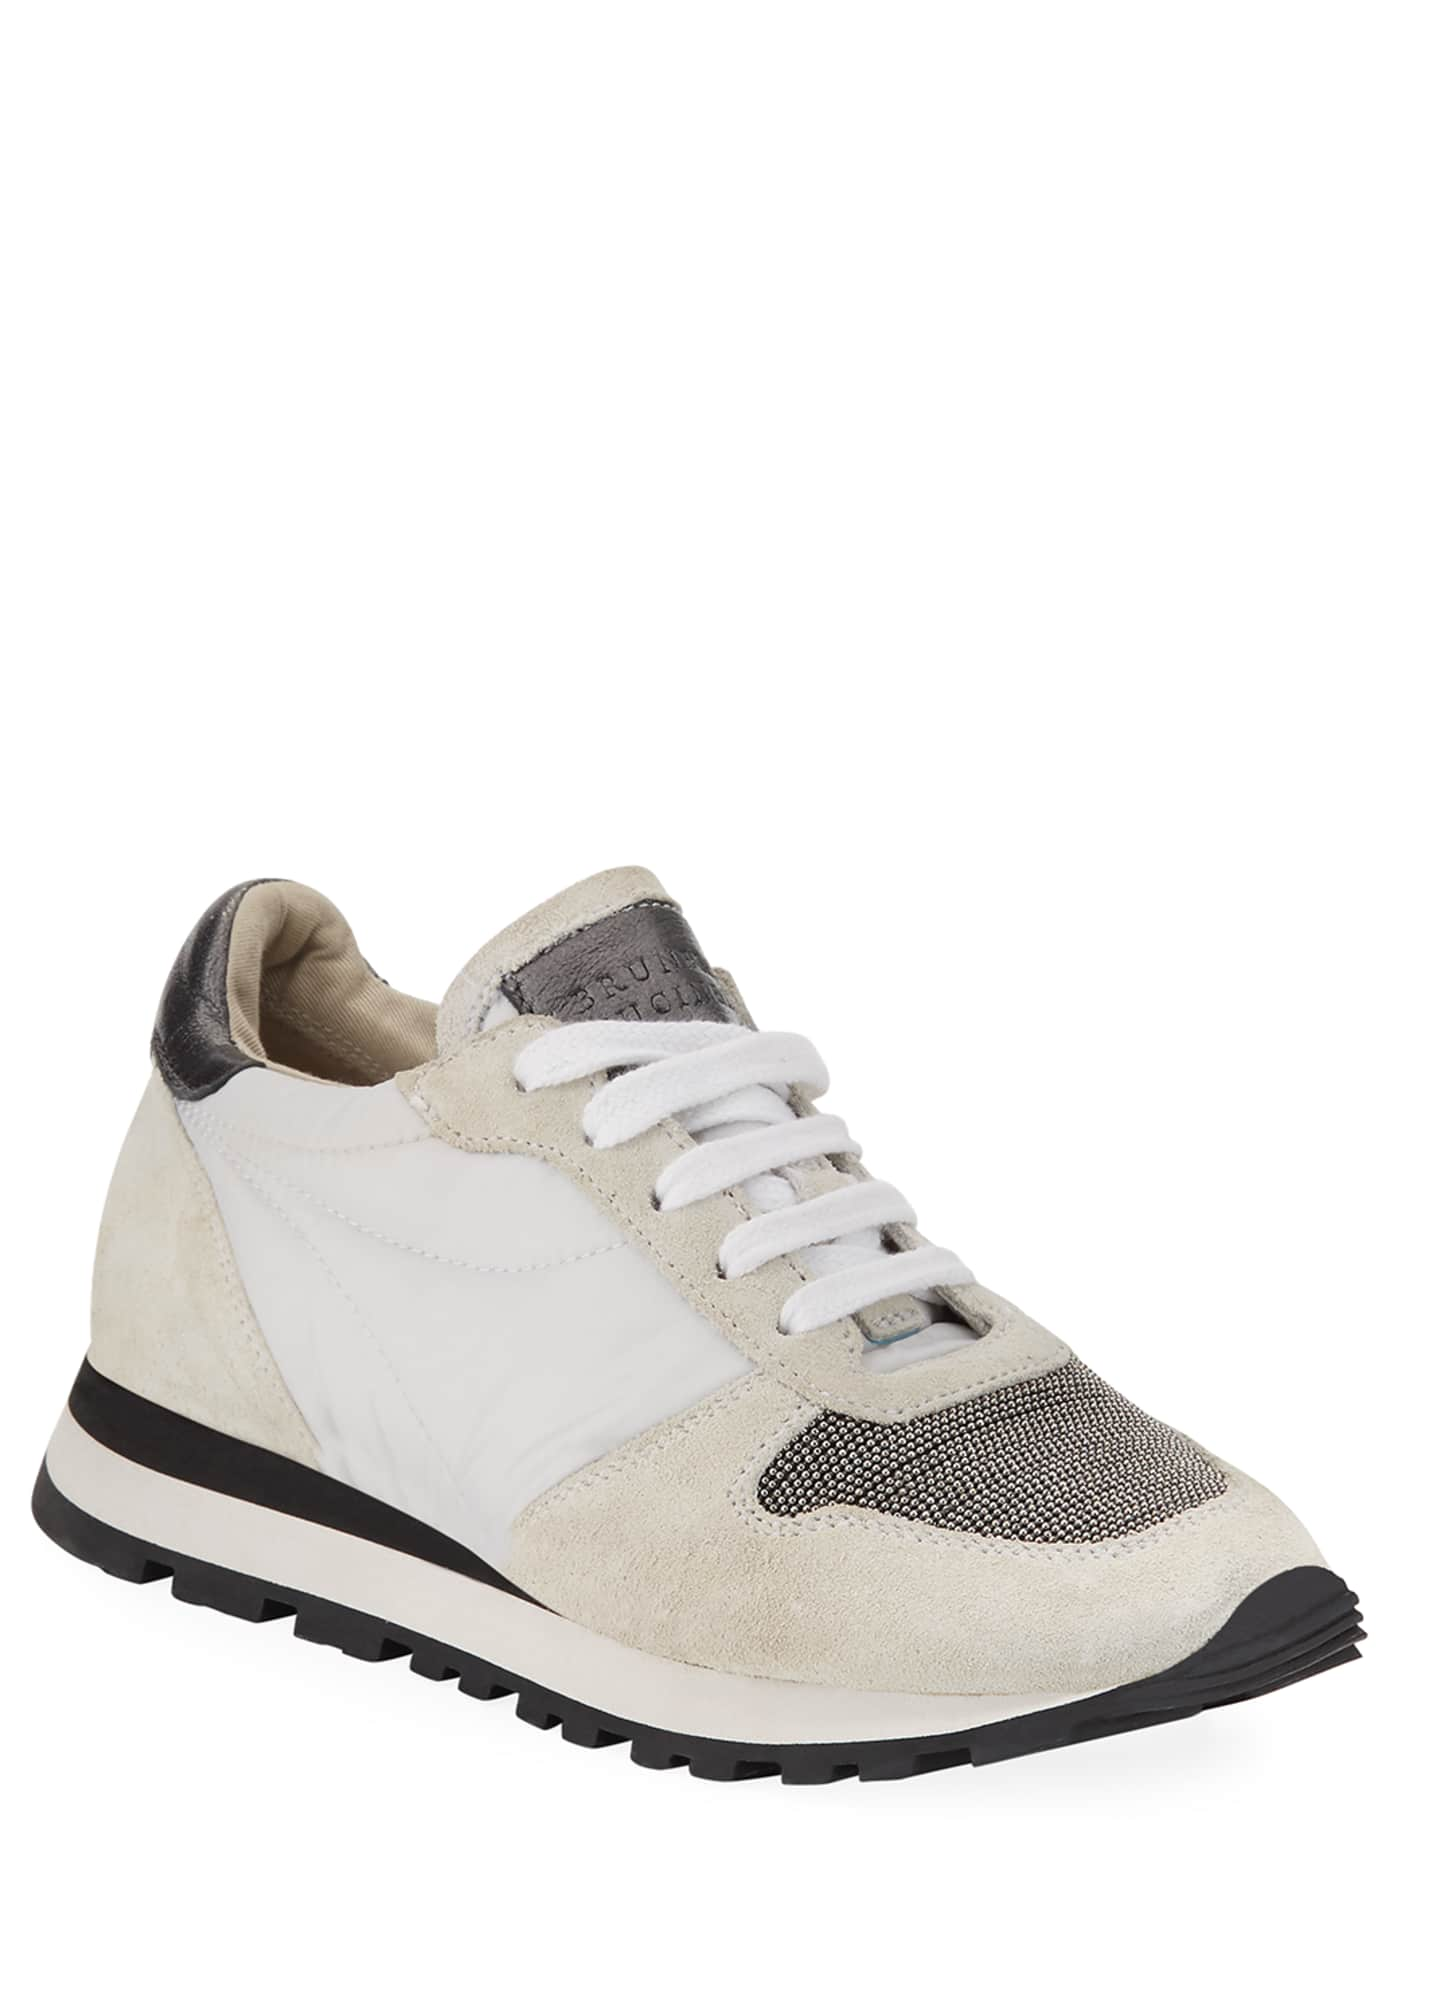 Brunello Cucinelli Girl's Suede and Leather Runner Sneakers,